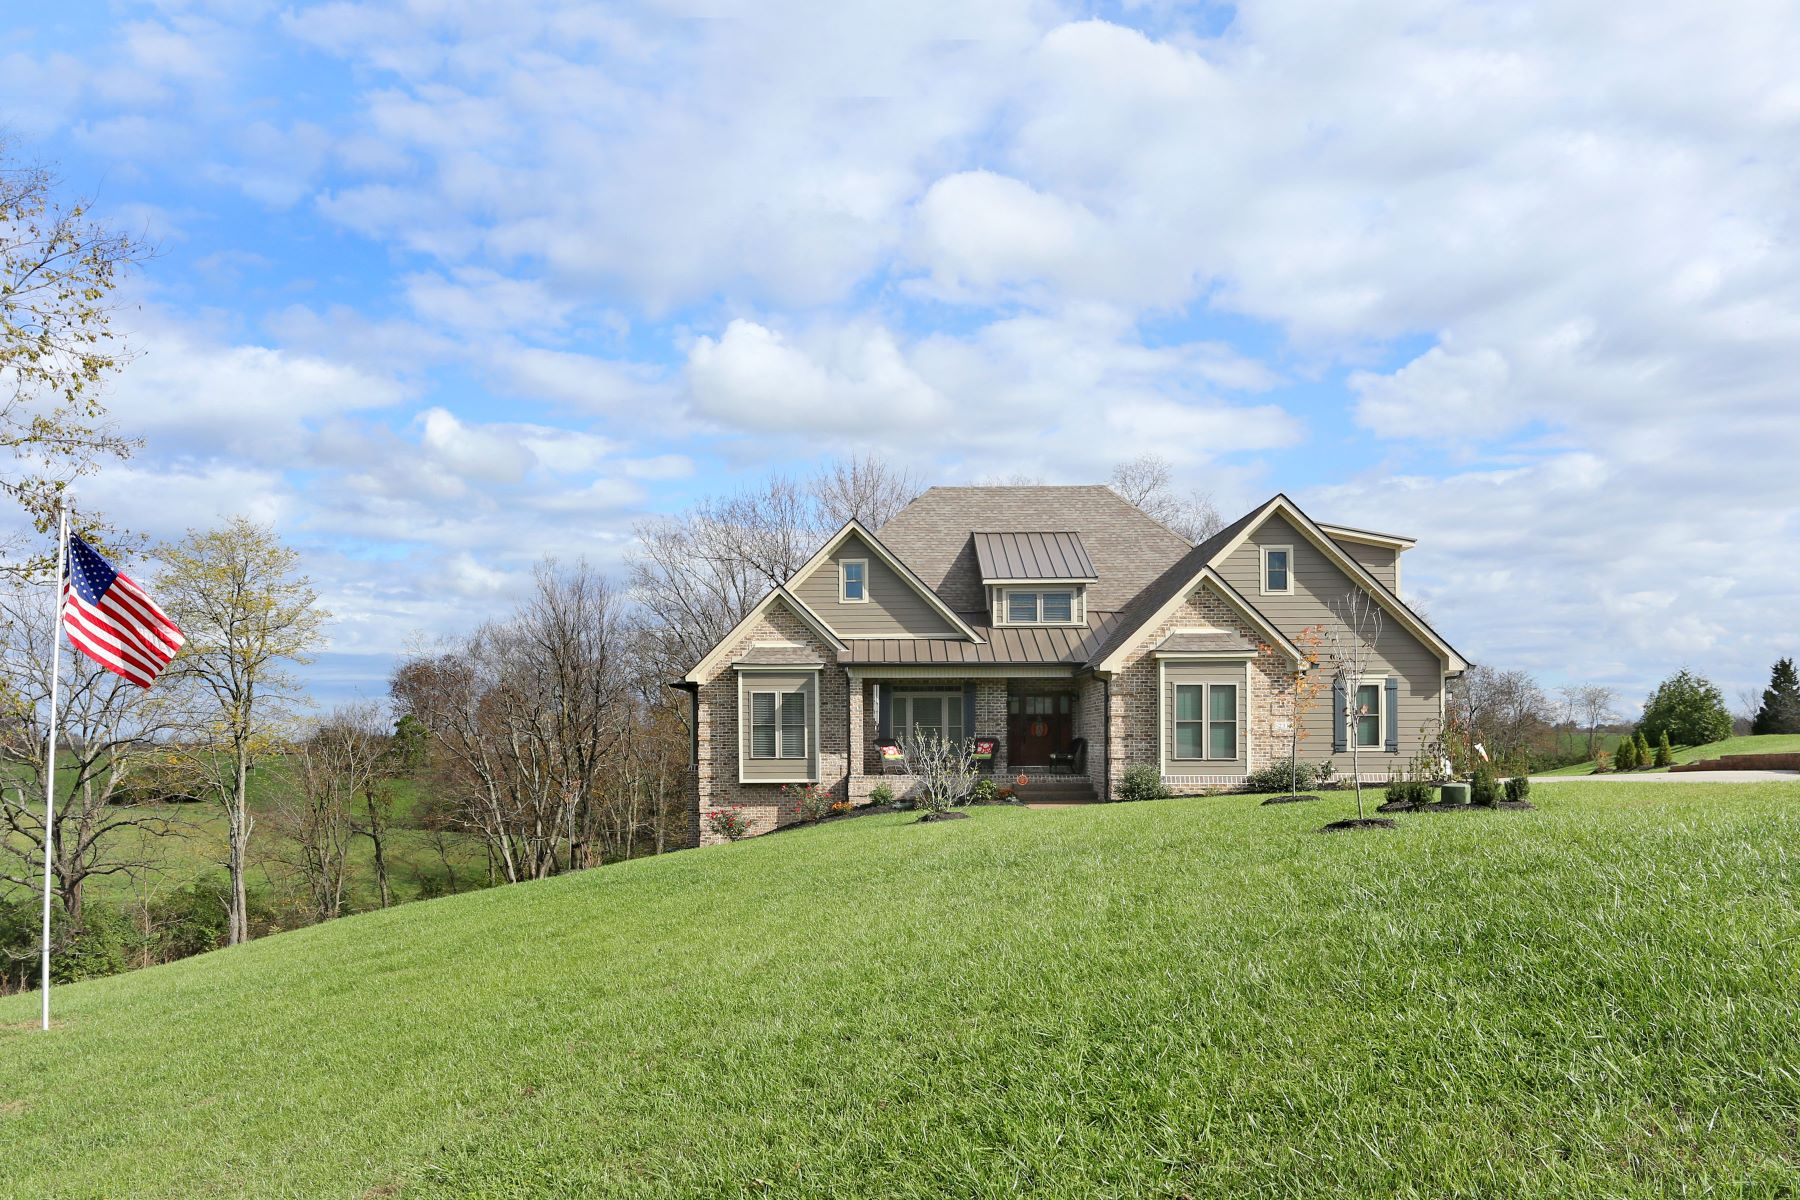 Single Family Home for Sale at 231 Stacy Lane Richmond, Kentucky 40475 United States